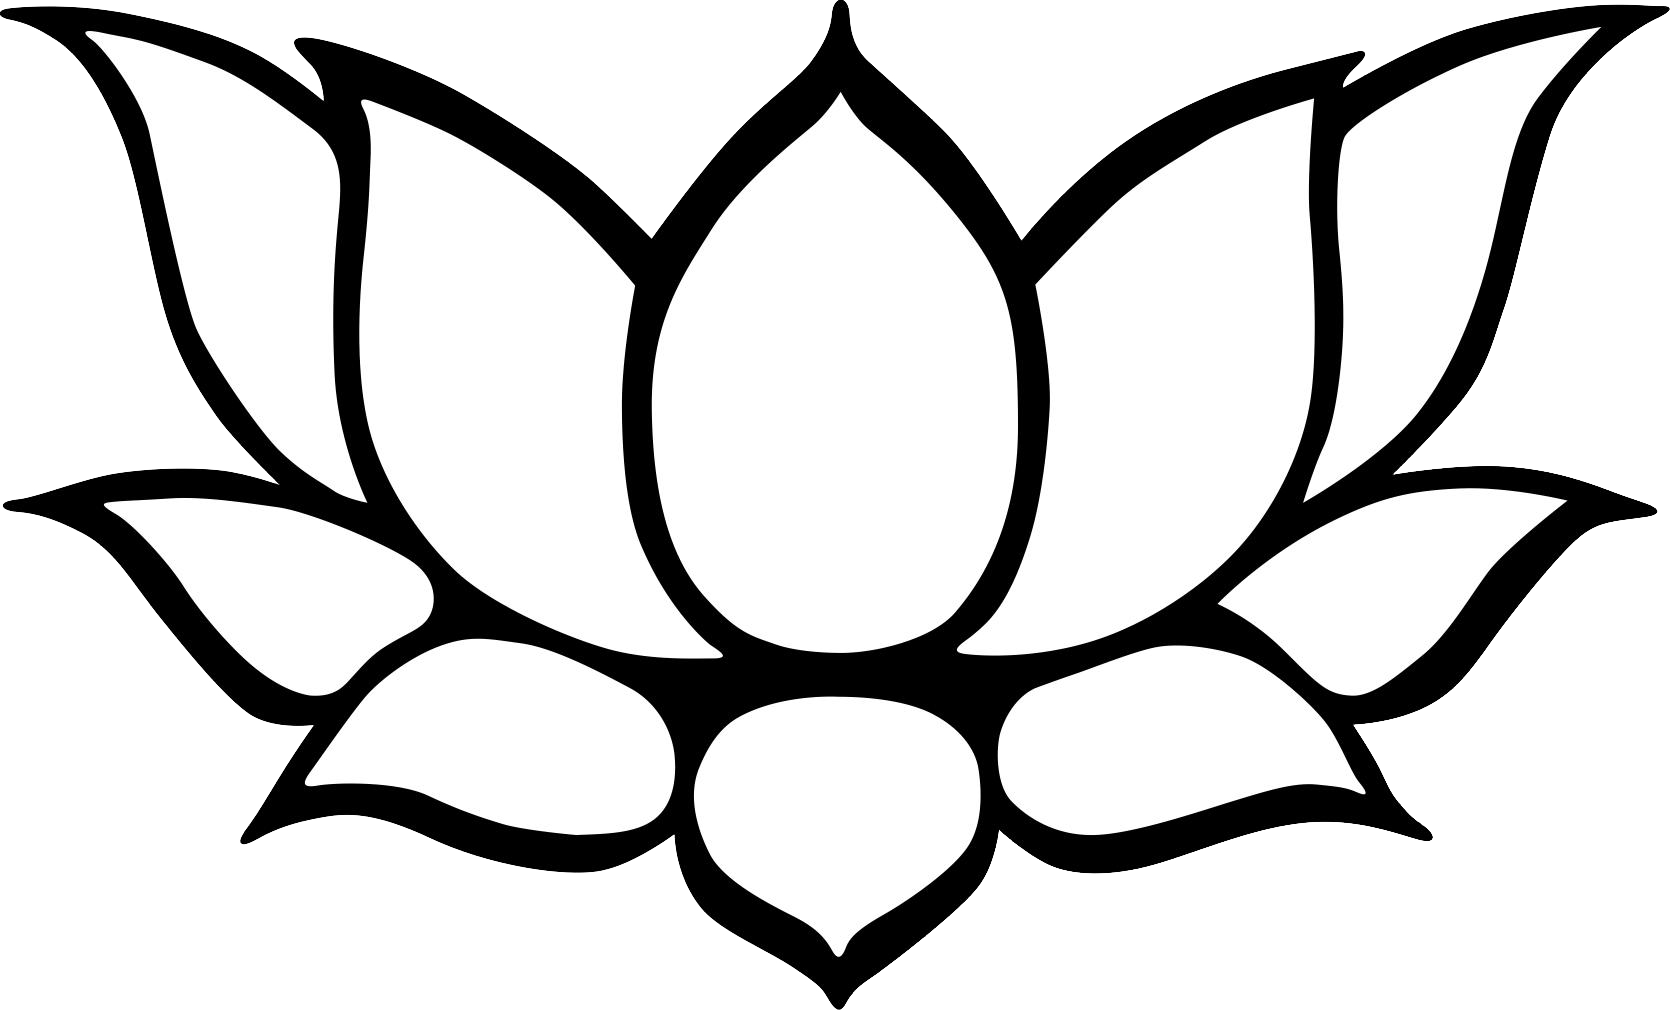 pin Lotus clipart black and white #4 - Lotus Flower Black And White PNG